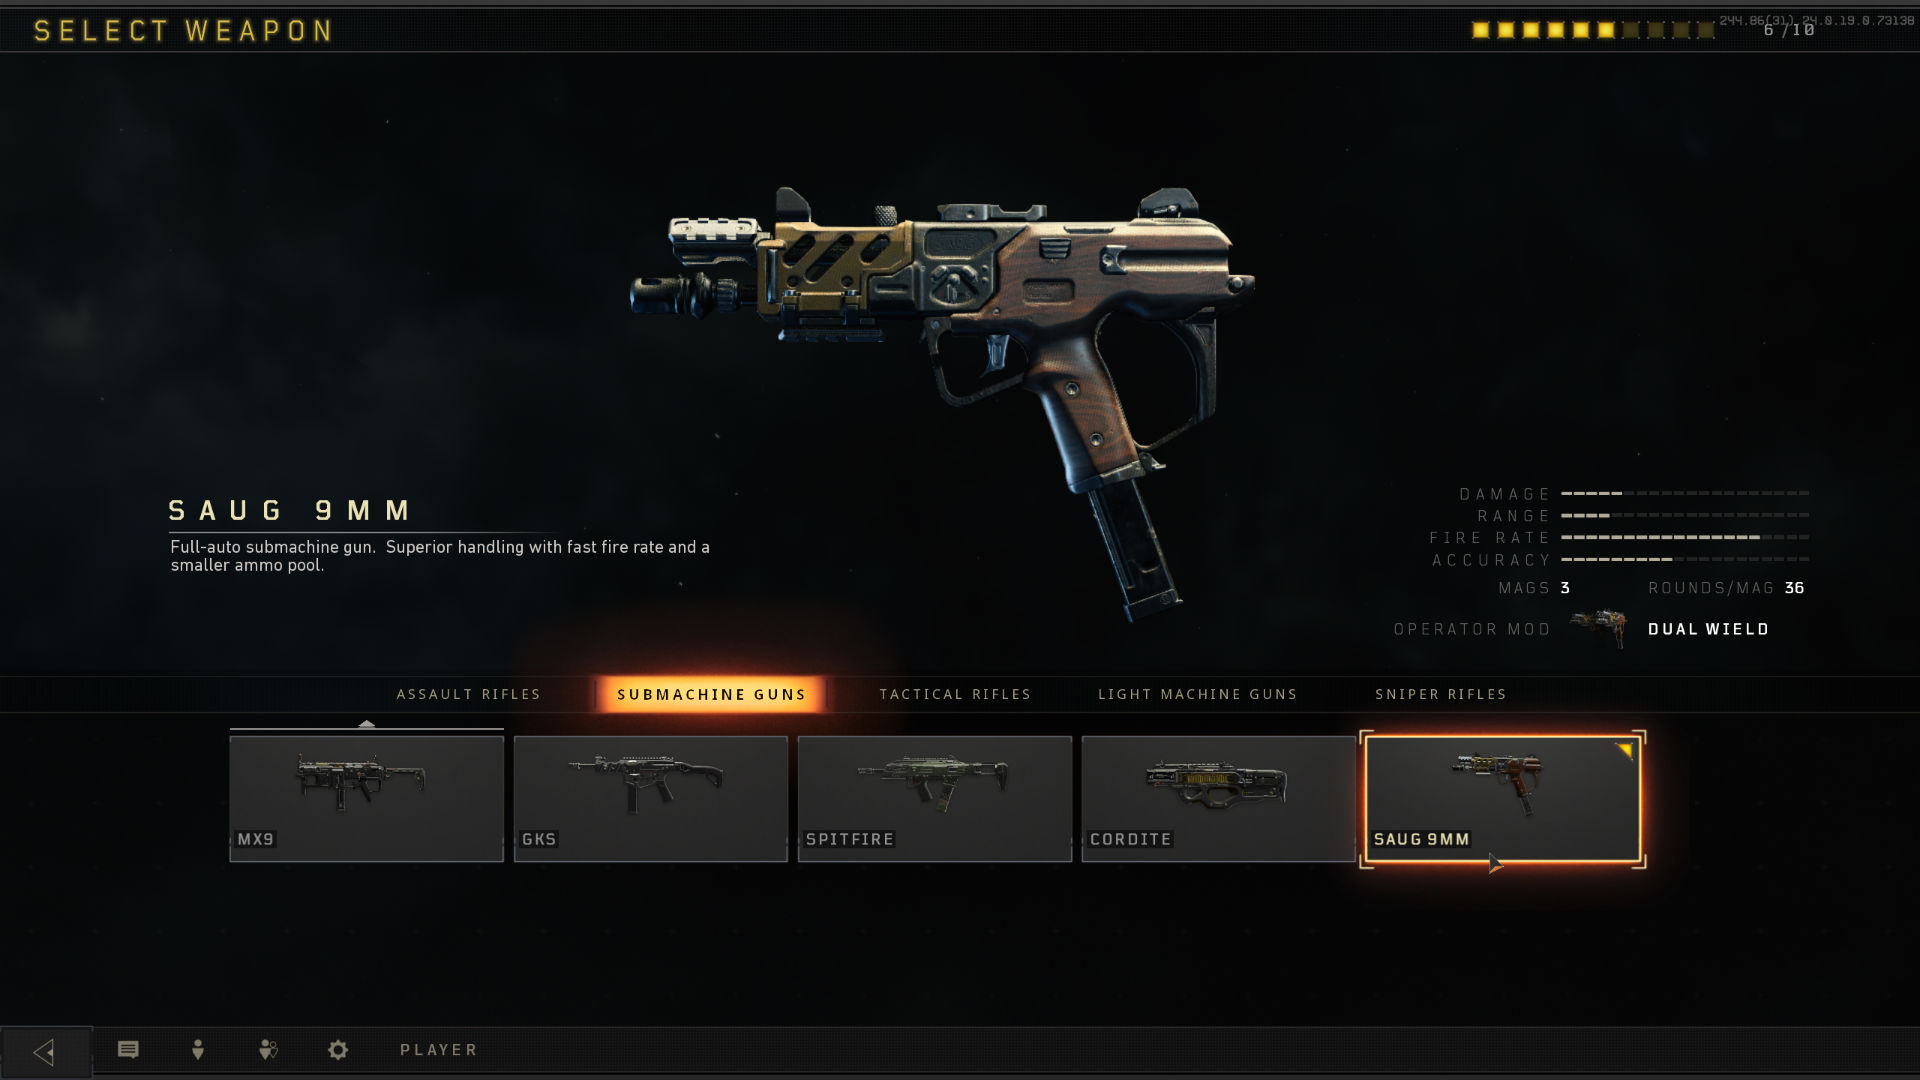 Call of Duty: Black Ops 4 weapons – every gun detailed | PCGamesN